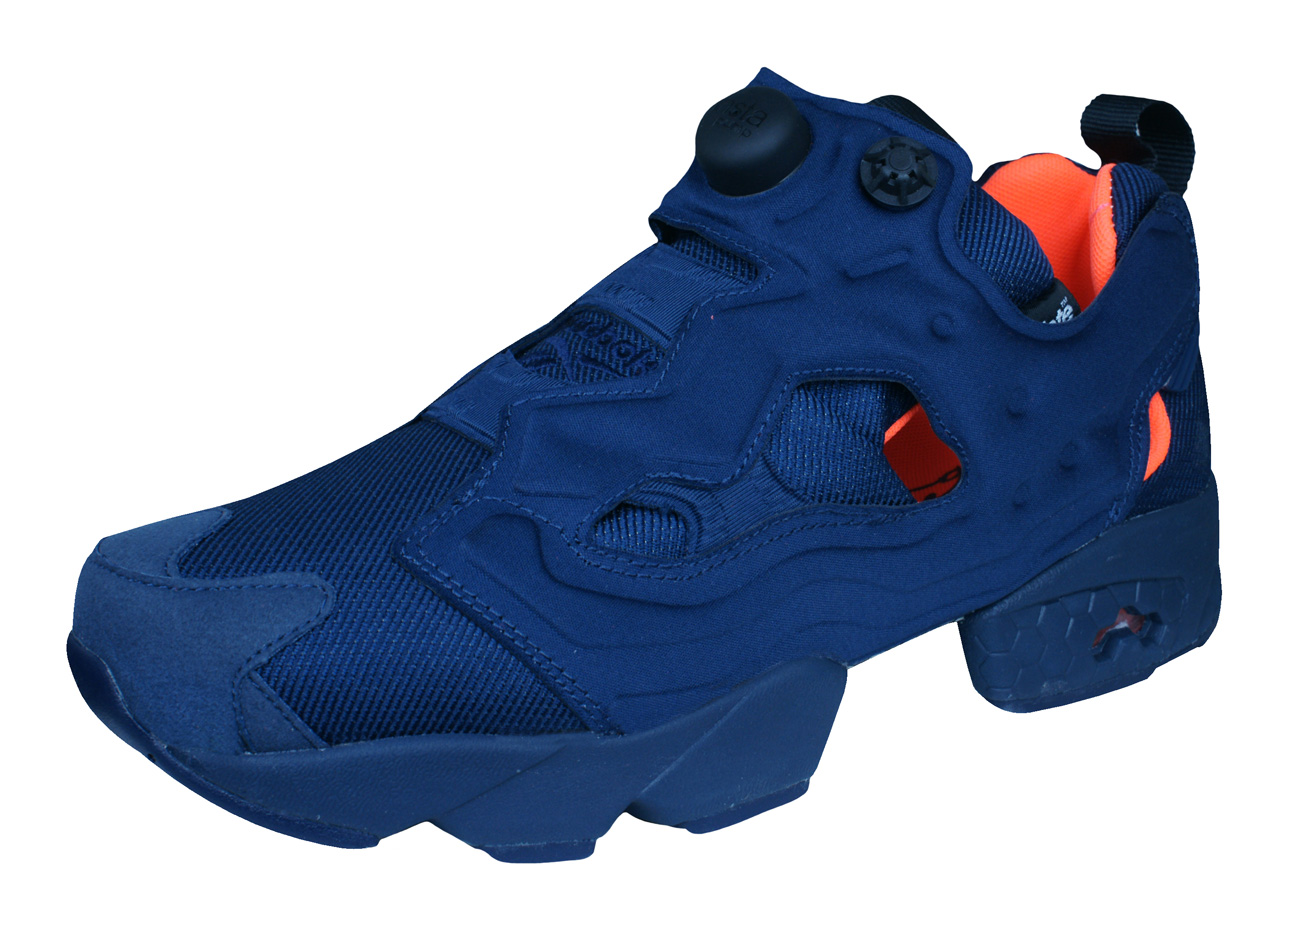 f9ad585c8cfa ... Reebok Instapump Fury Tech Mens Trainers Shoes - Navy Blue ...